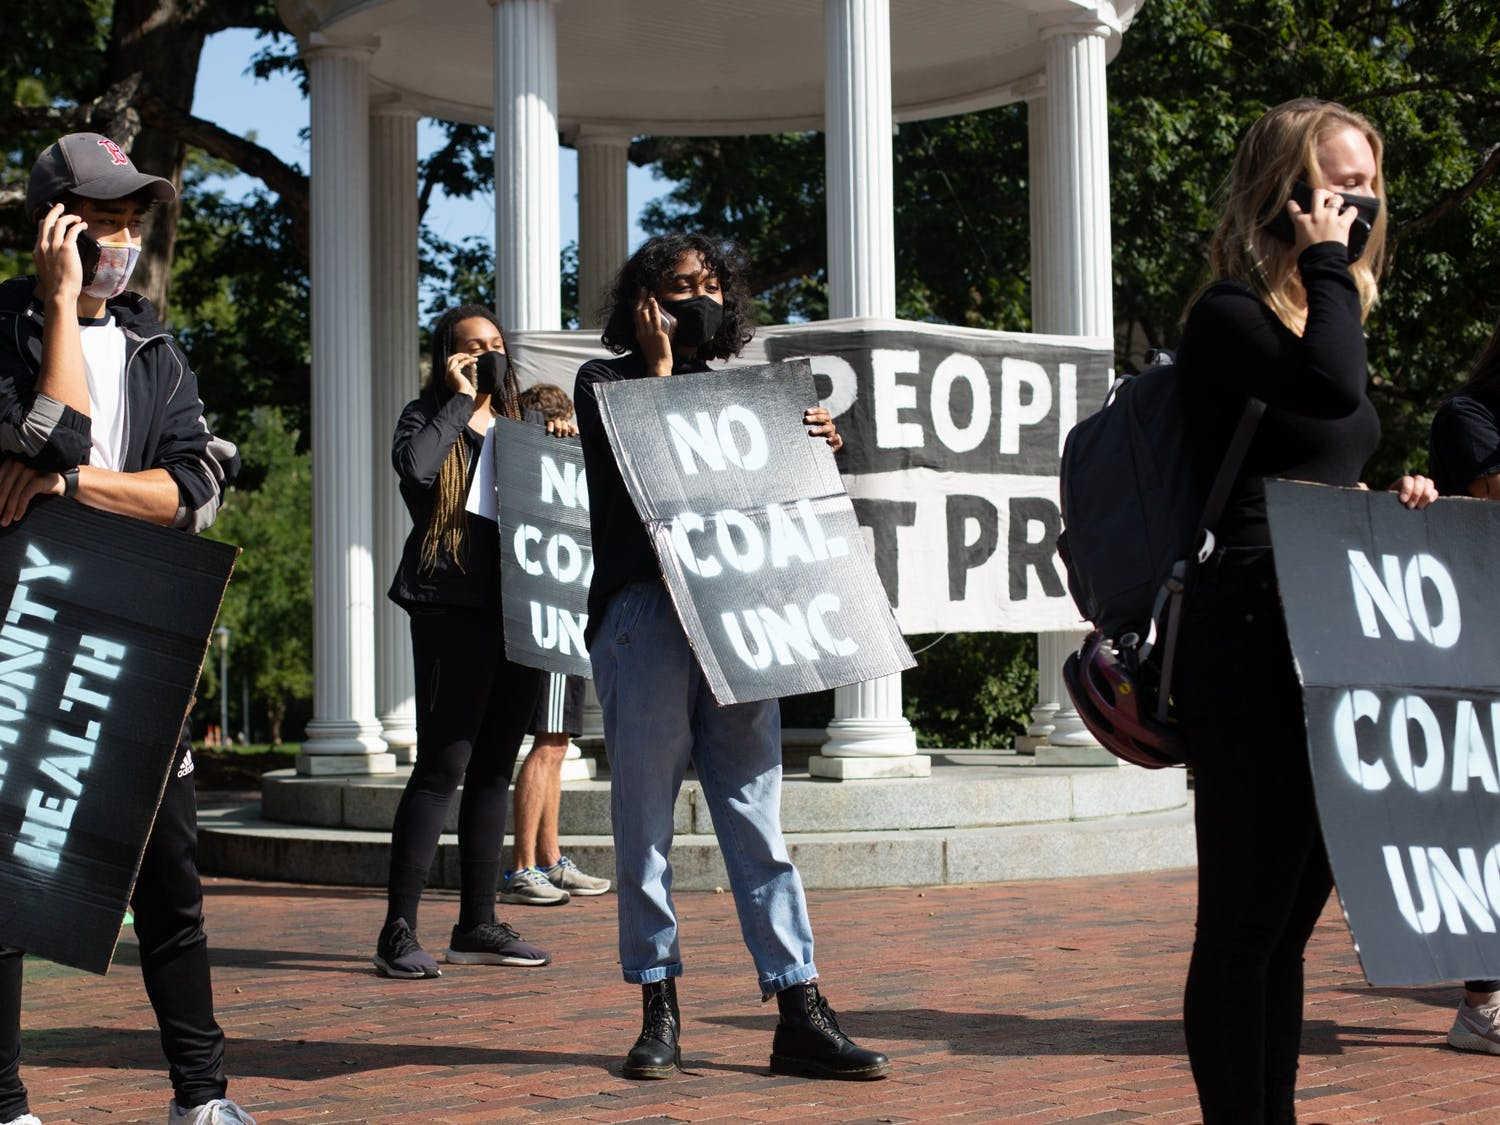 UNC sophomore Deeksha Mittal and other UNC students call Chancellor Guskiewicz to demand the university take accountability for UNC's coal plant on Tuesday, Sept. 22, 2020.